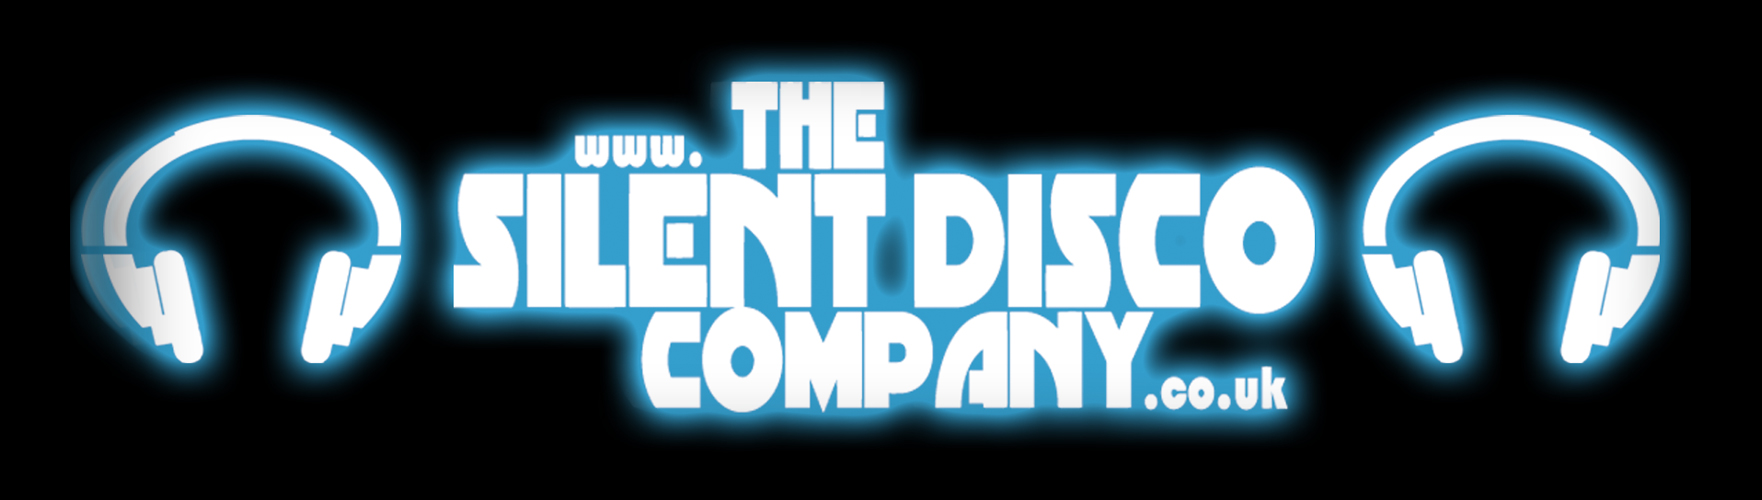 The Silent Disco Company